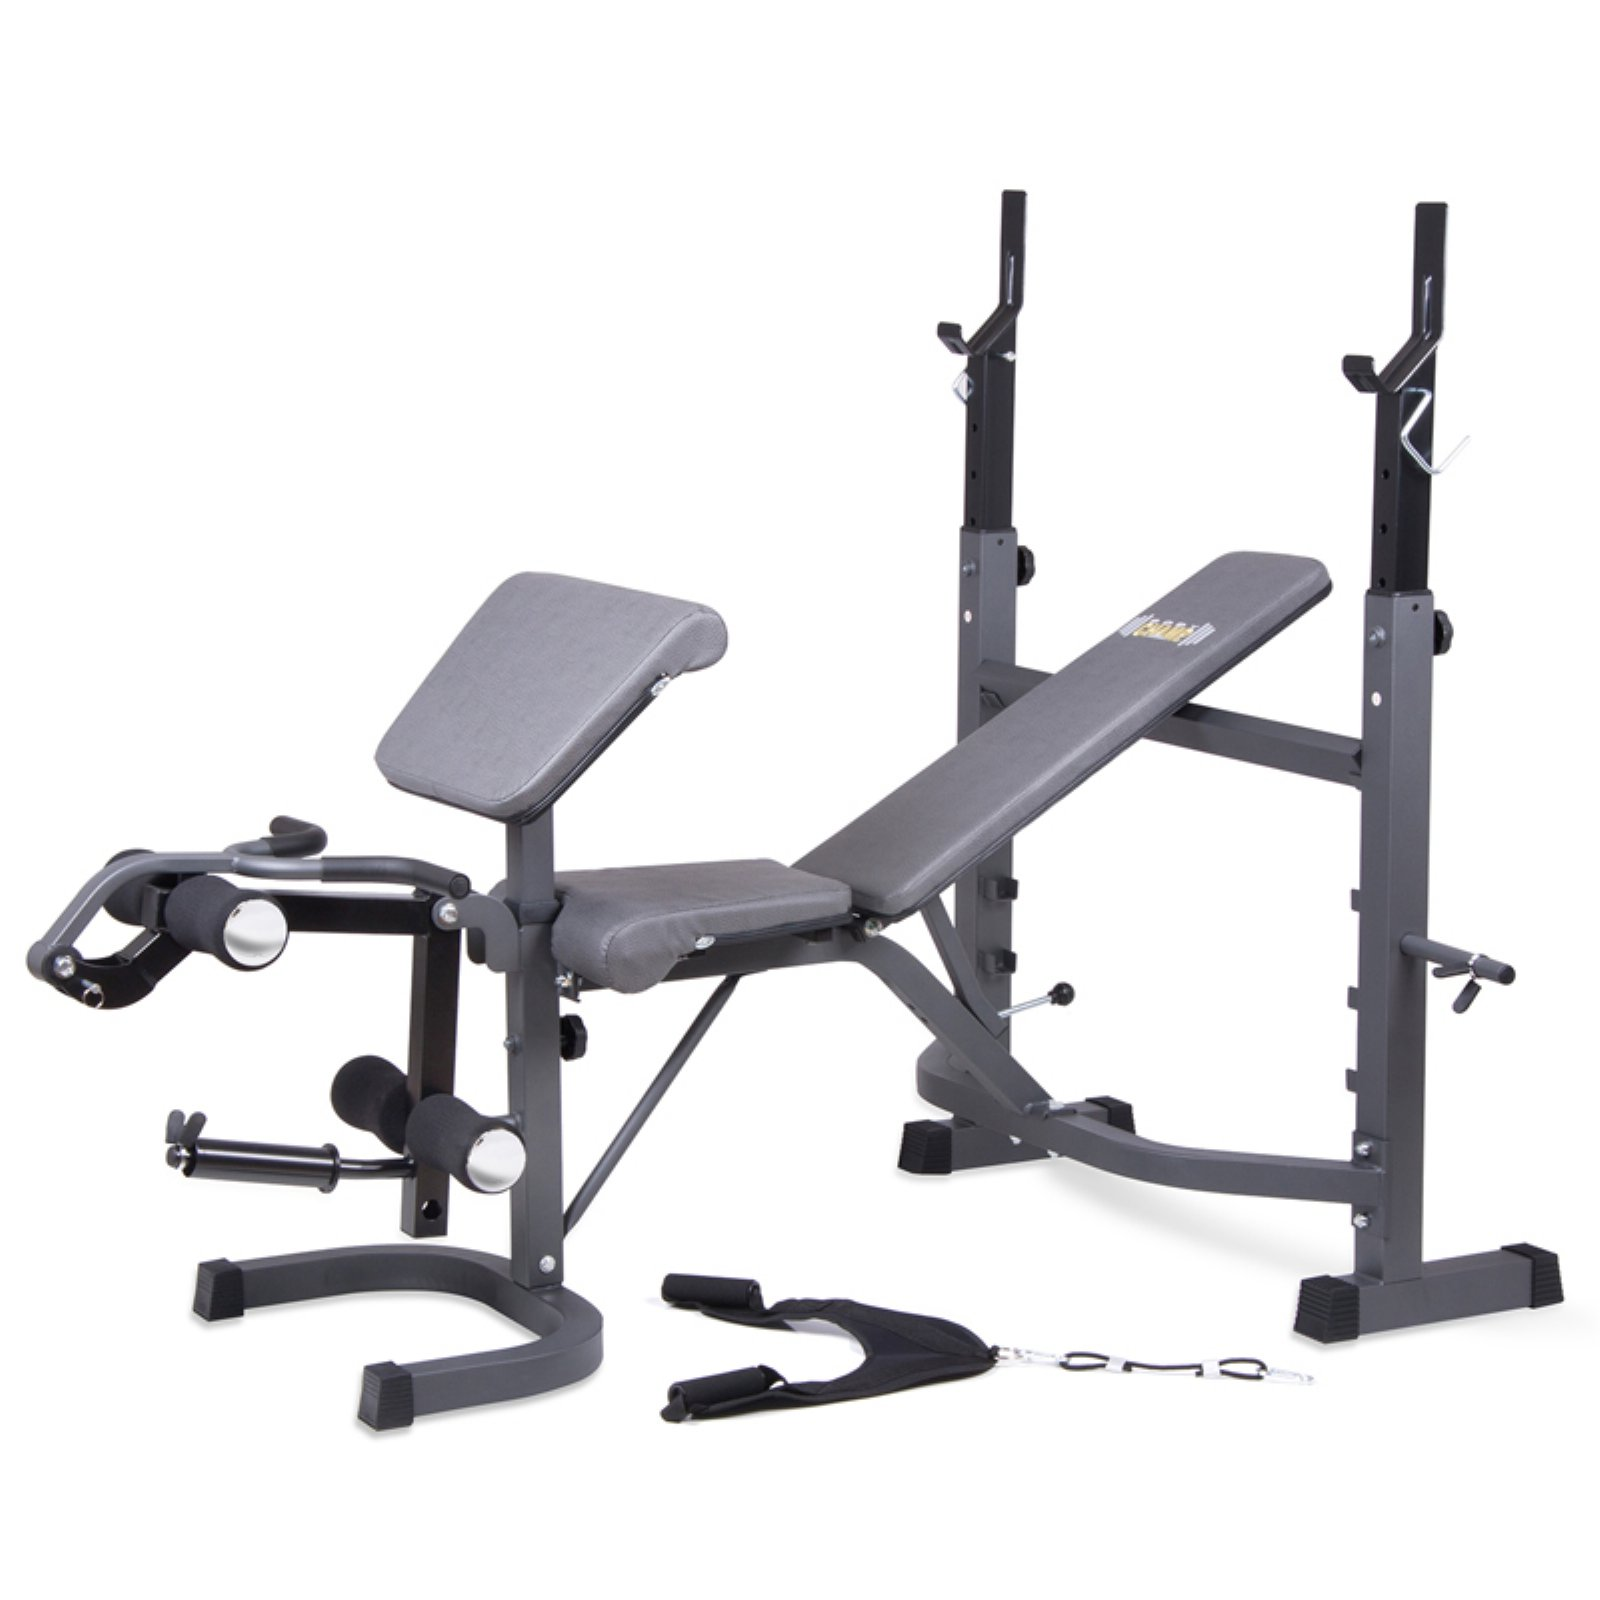 Body Champ® Olympic Weight Bench with Preacher Arm Curl, Leg Extension / Curl and Crunch Handle Attachments BCB5860